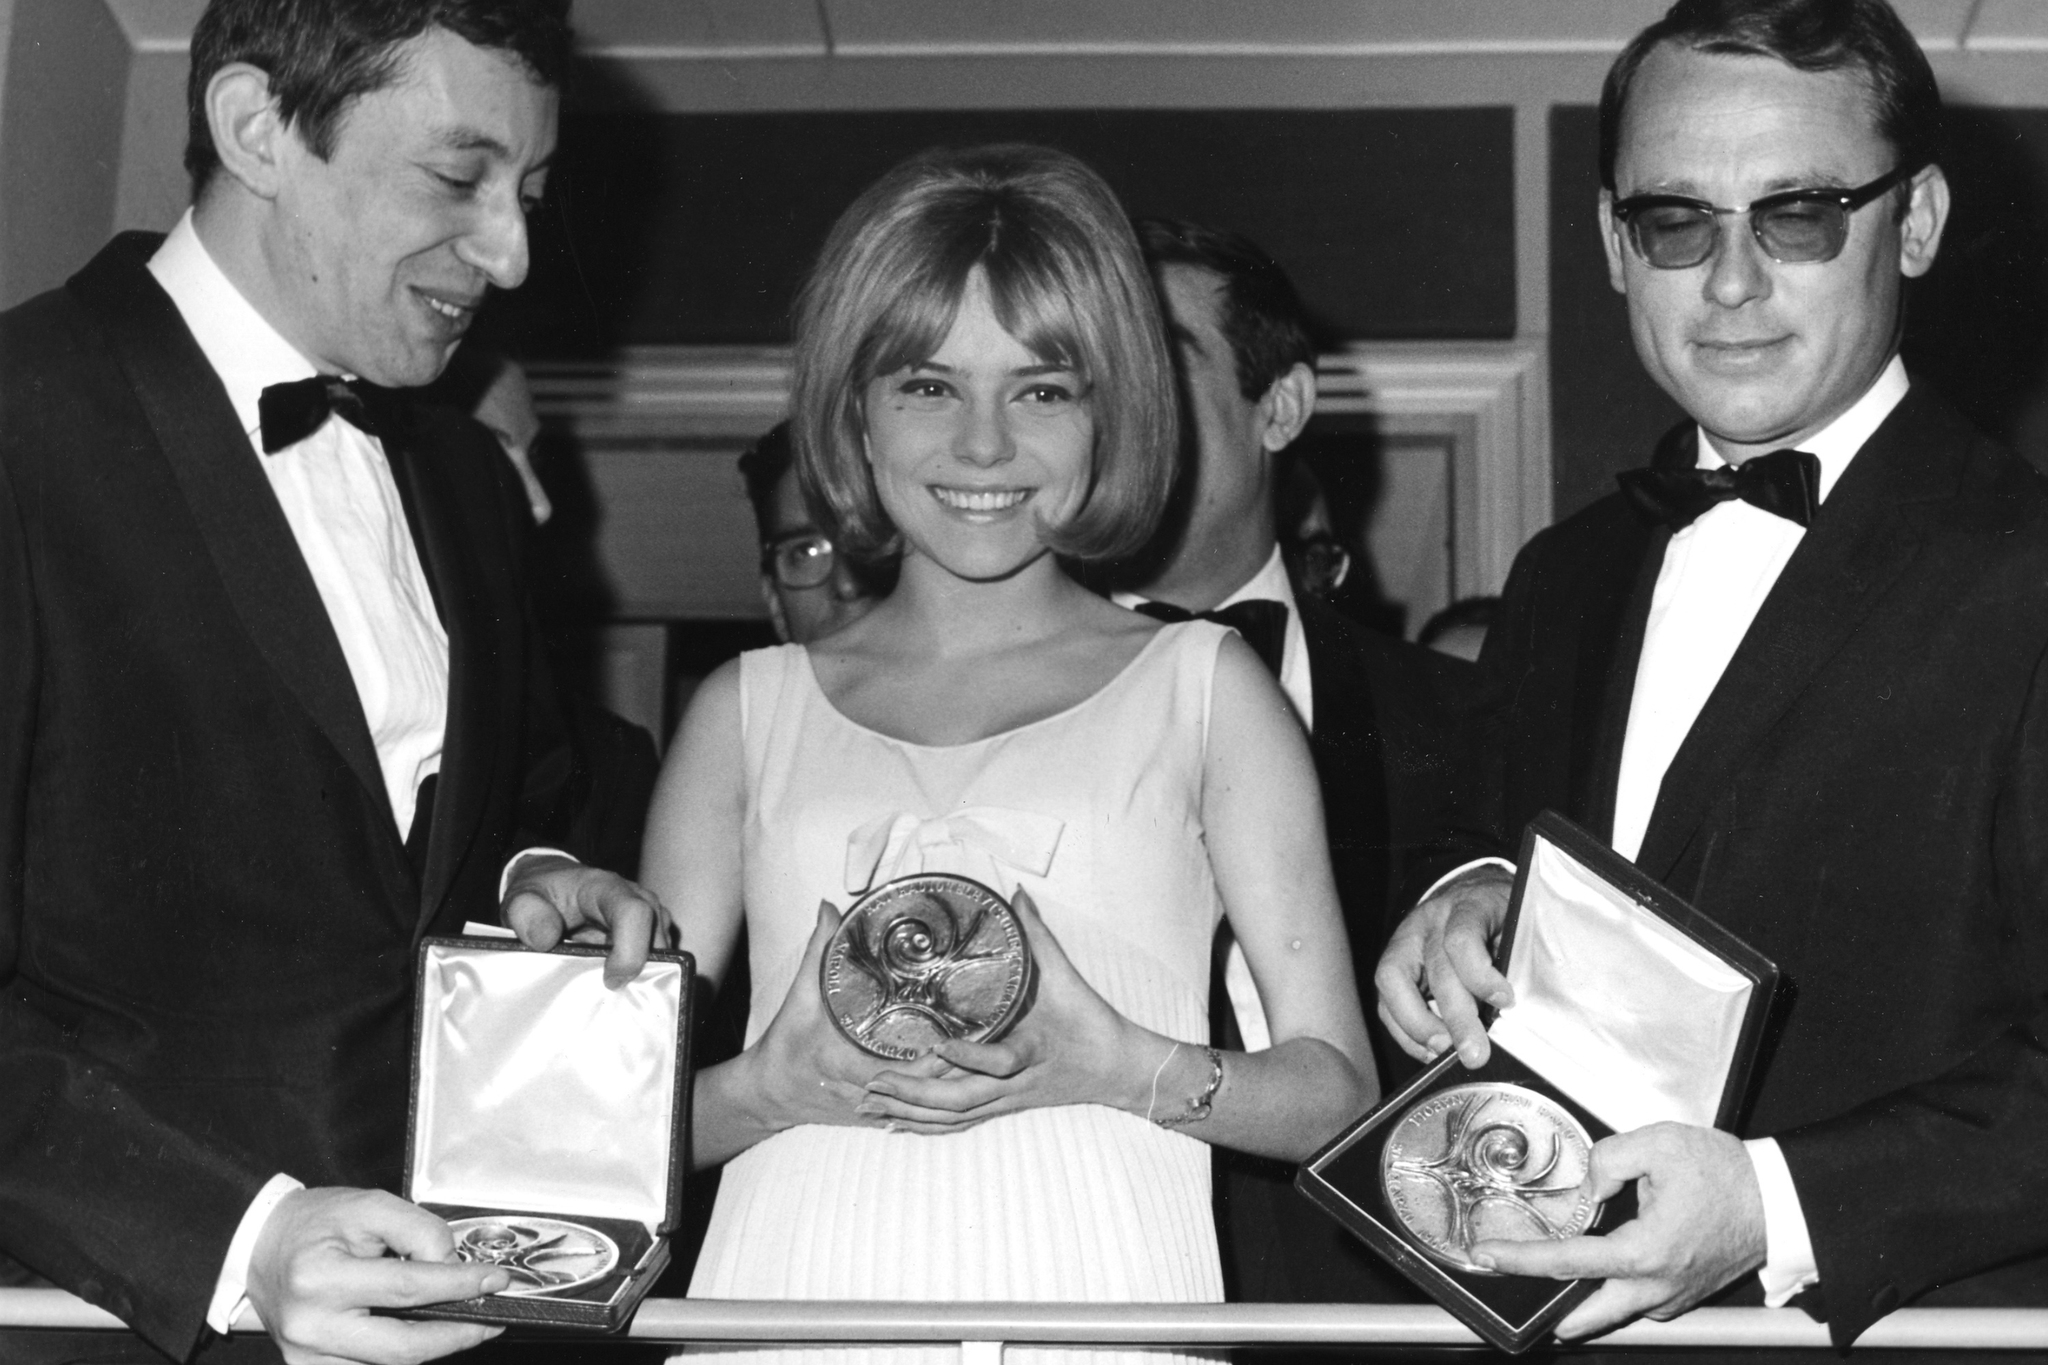 In this March 20, 1965 file photo, Winner, 18-year-old French singer France Gall, singing for Luxembourg in the Eurovision Song Contest.